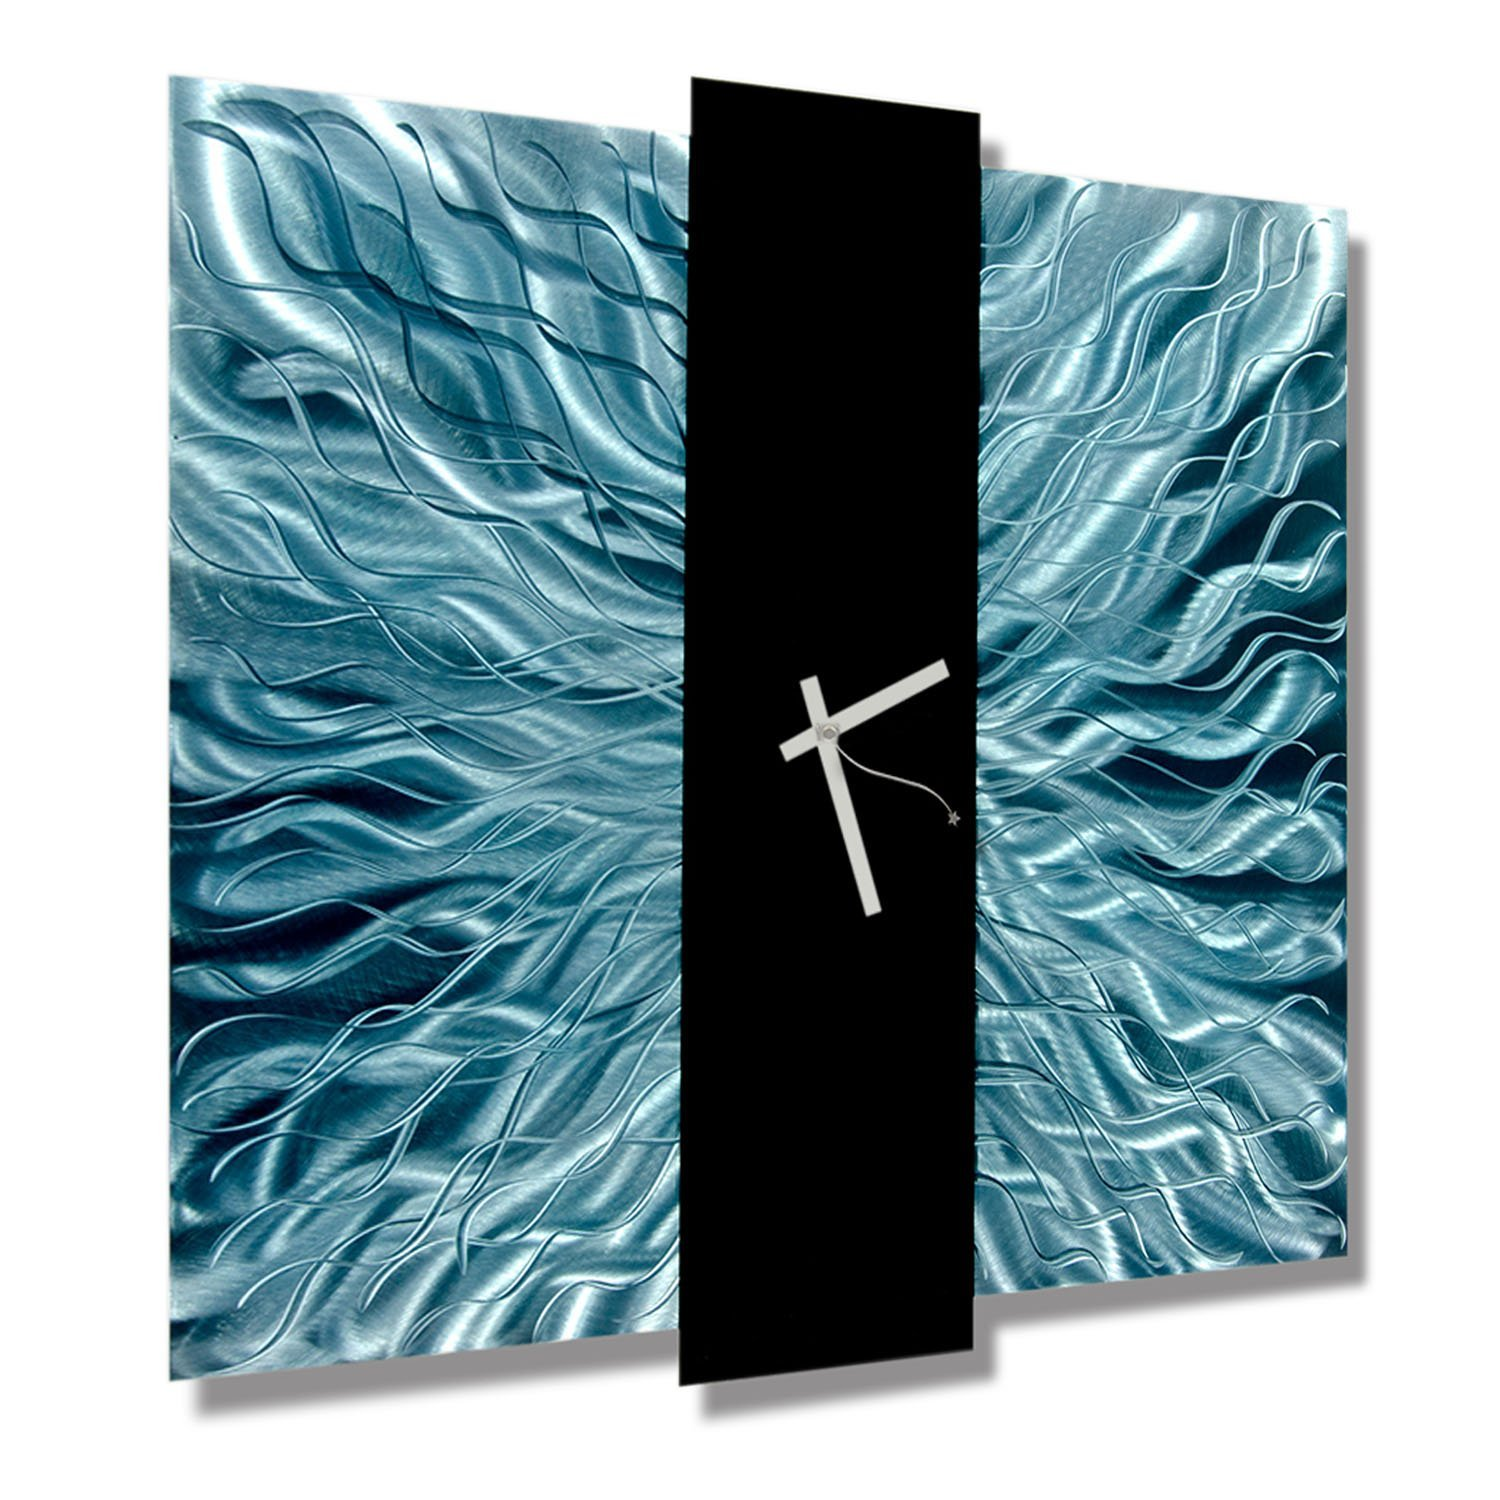 Abstract Teal and Black Hand-crafted Metal Wall Sculpture Clock - Contemporary Modern Colorful Home Office Decor Accent Art - Harmonious Mechanism by Jon Allen - 24-inch